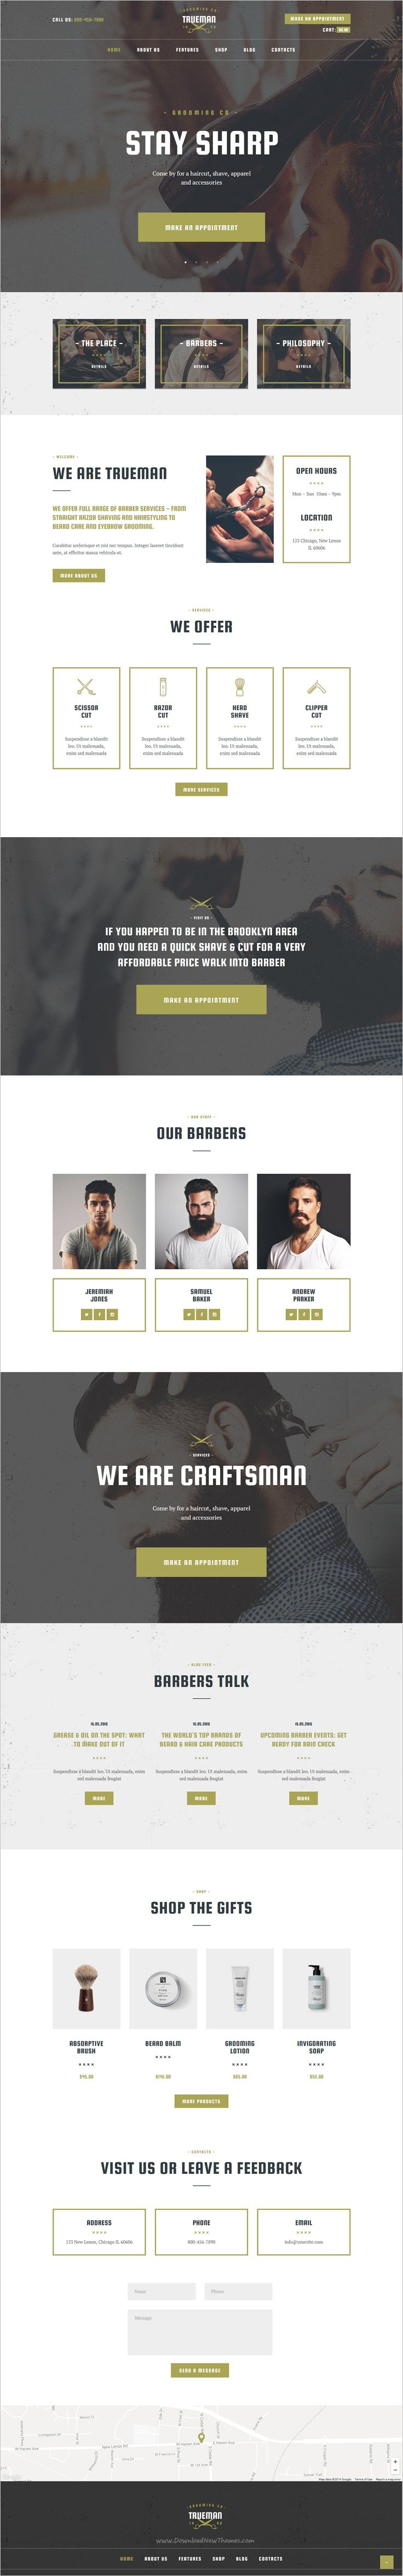 Trueman is a modern and functional design #WordPress theme for responsive #hairdressers, #barber shop or hair salon website download now➯ https://themeforest.net/item/trueman-barber-shop-hair-salon-wordpress-theme/16557573?ref=Datasata